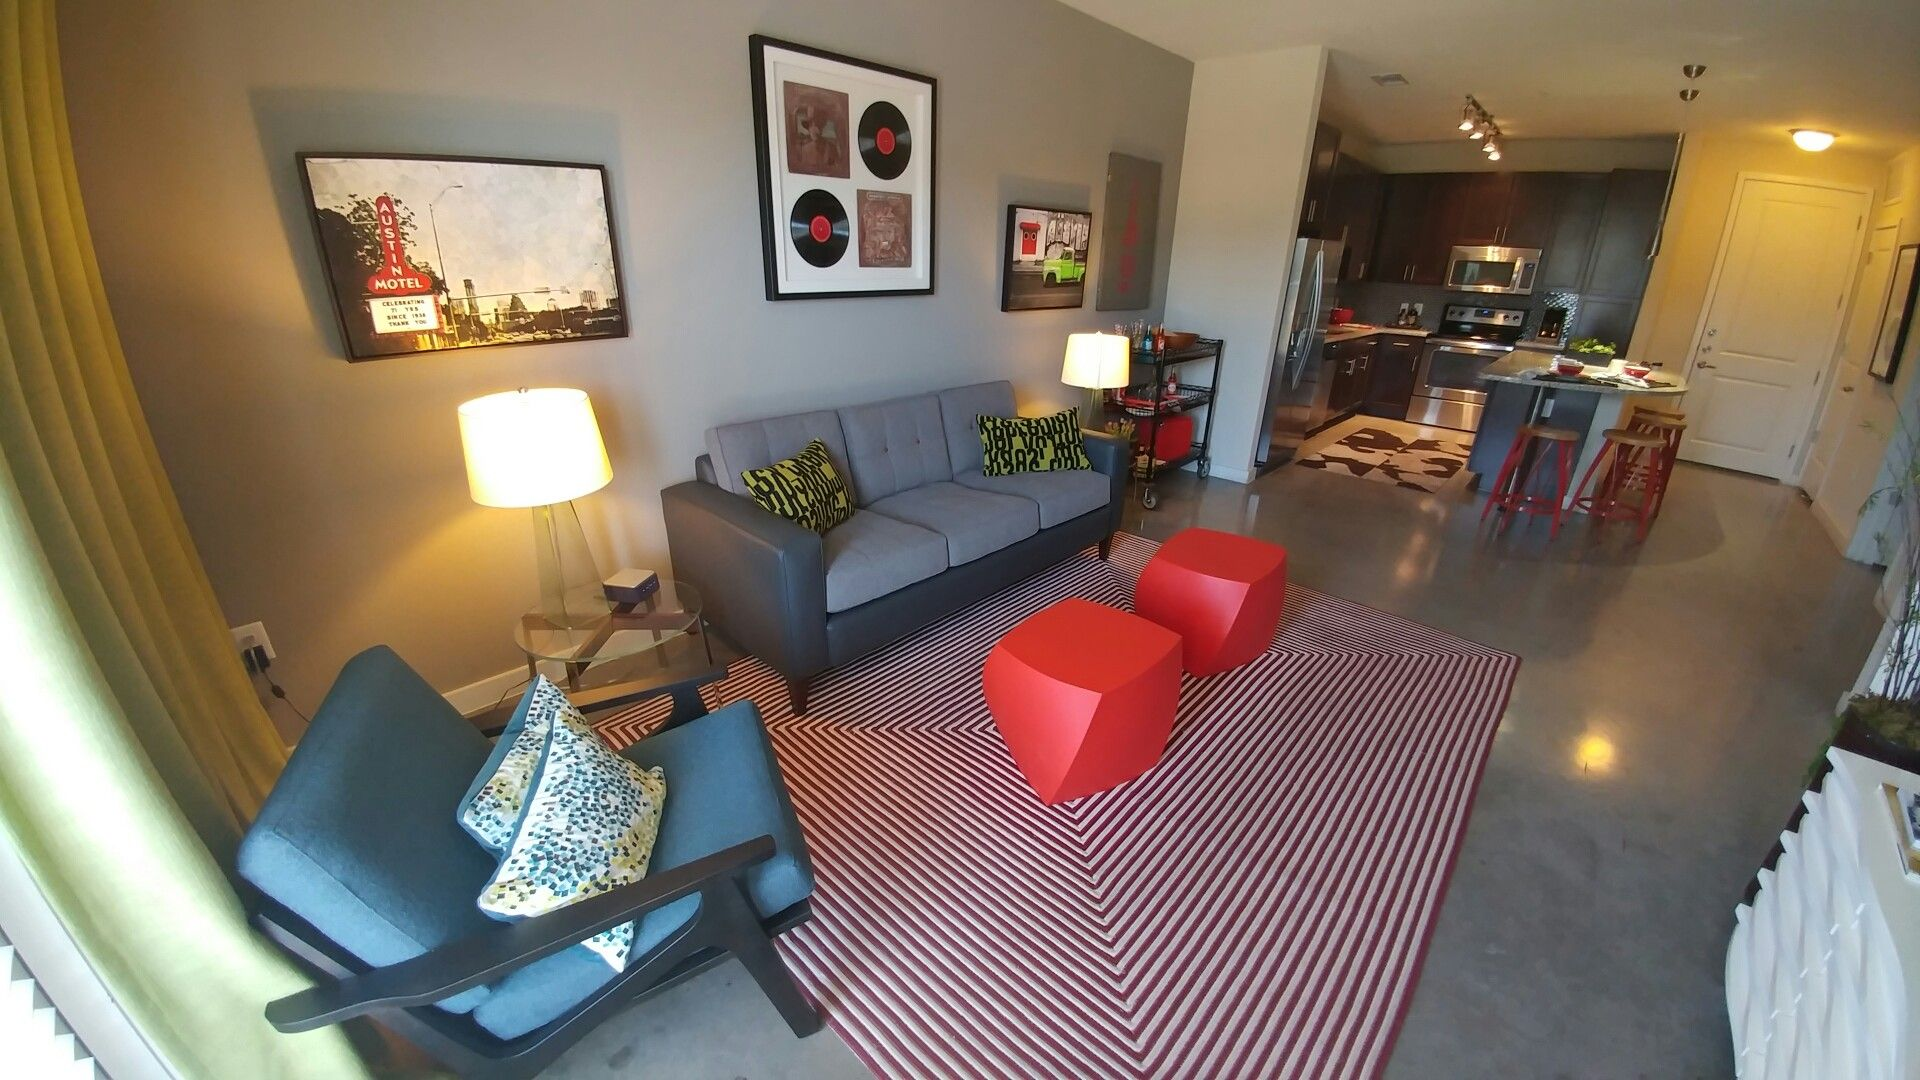 A Little Souther Modern Charm Apartment Interior Apartment Interior Design Interior Design